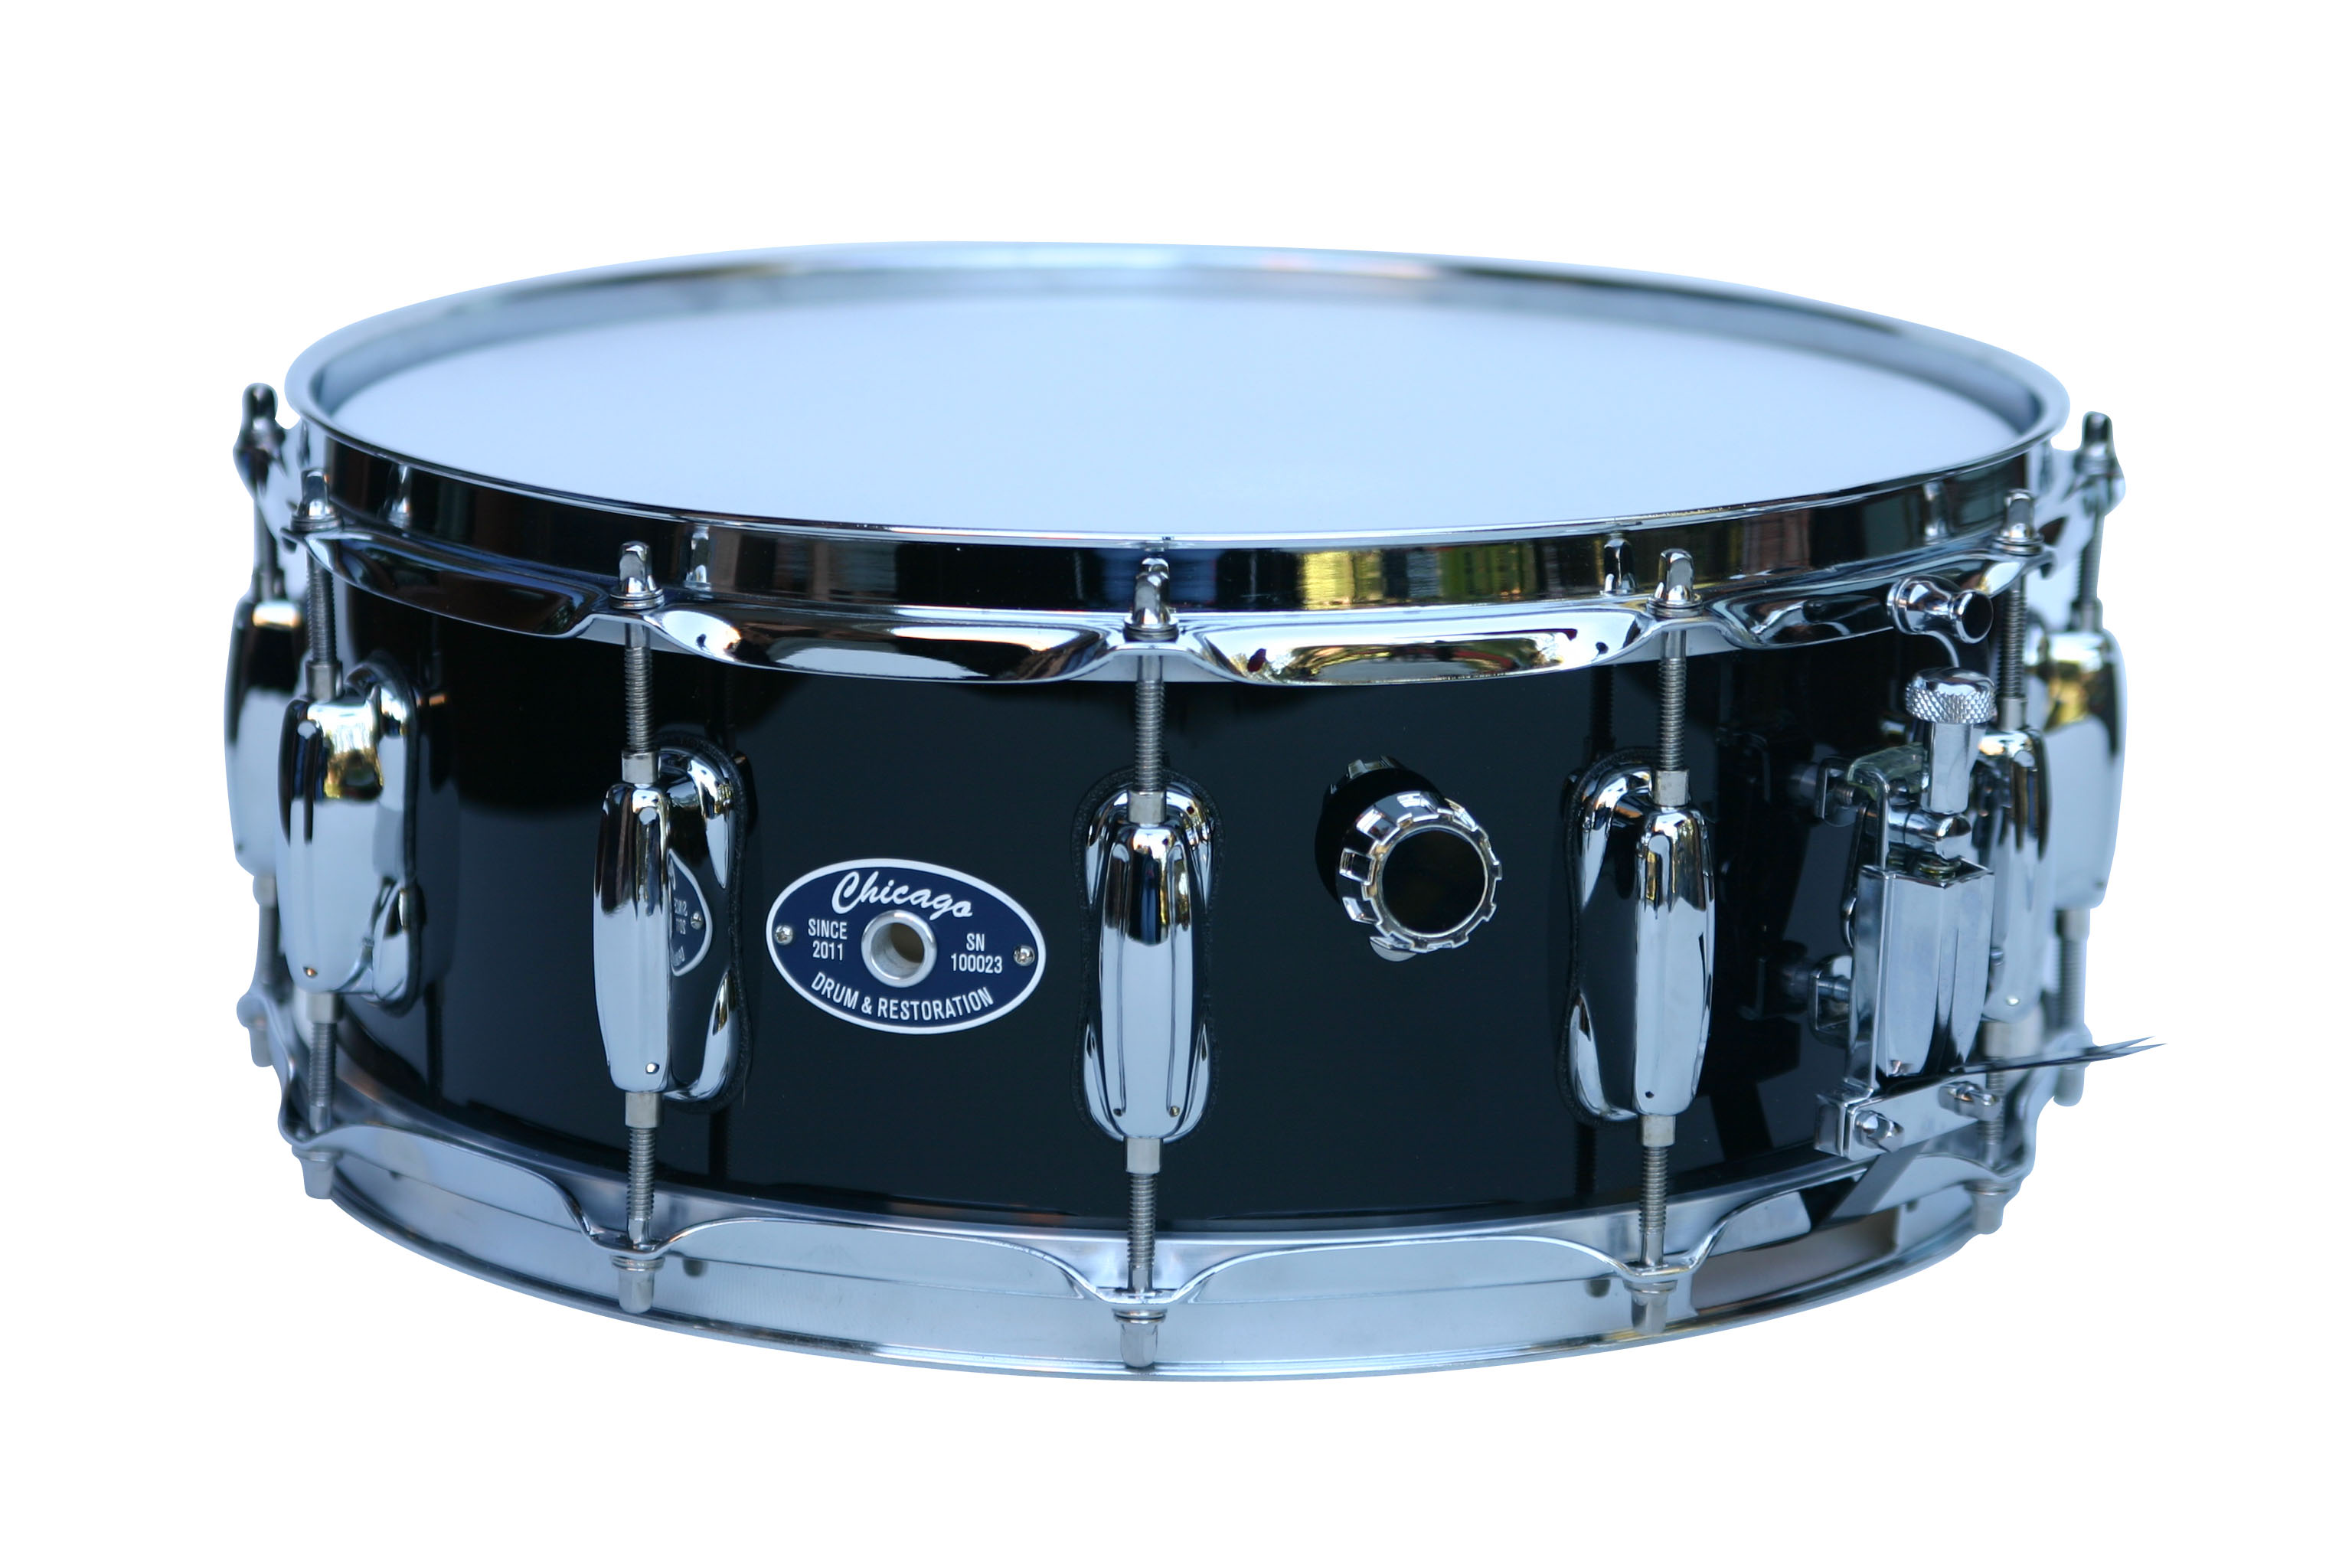 """5-1/2"""" Chicago Legend Snare in Black Gloss"""